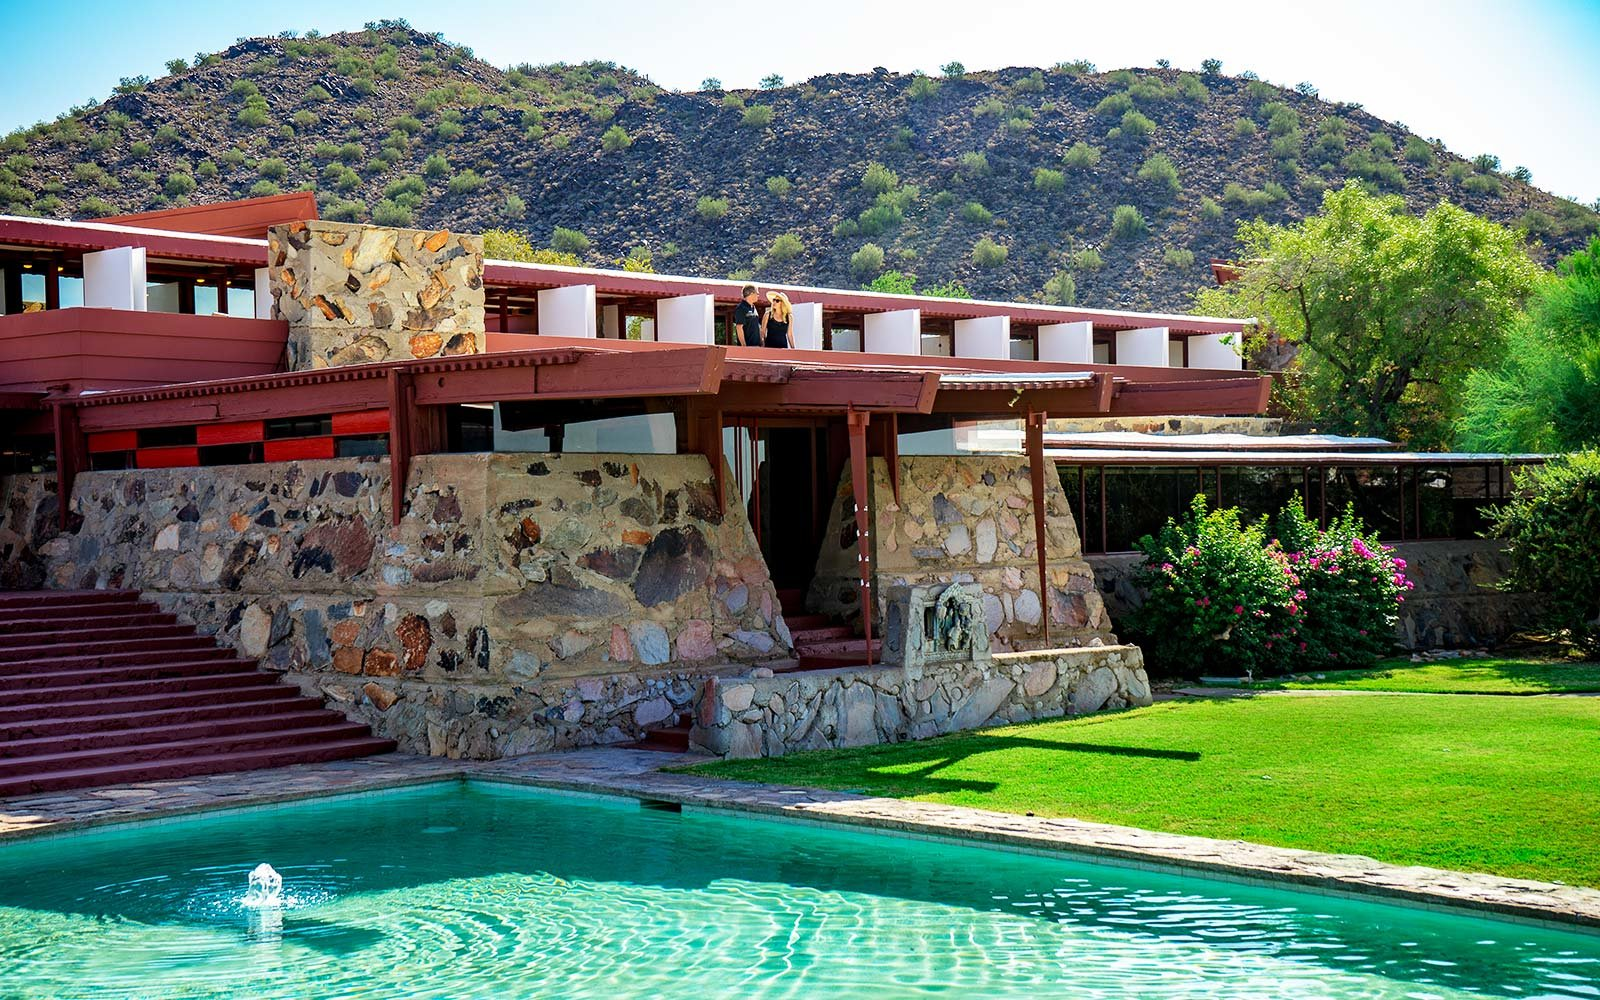 10 Must-See Houses Designed by Architect Frank Lloyd Wright | Travel on architecture landscaping design, alvar aalto architecture design, architecture structural design, architecture residential building design, architecture design proposals, sustainable architecture design, wood architecture design, logical architecture design, architecture resume design, interior design, architecture world's greatest, architecture design room, factory architecture design, architecture portfolio, architecture university design, architecture window design, architecture 3d rendering, house design, architecture wallpaper, architecture salary,